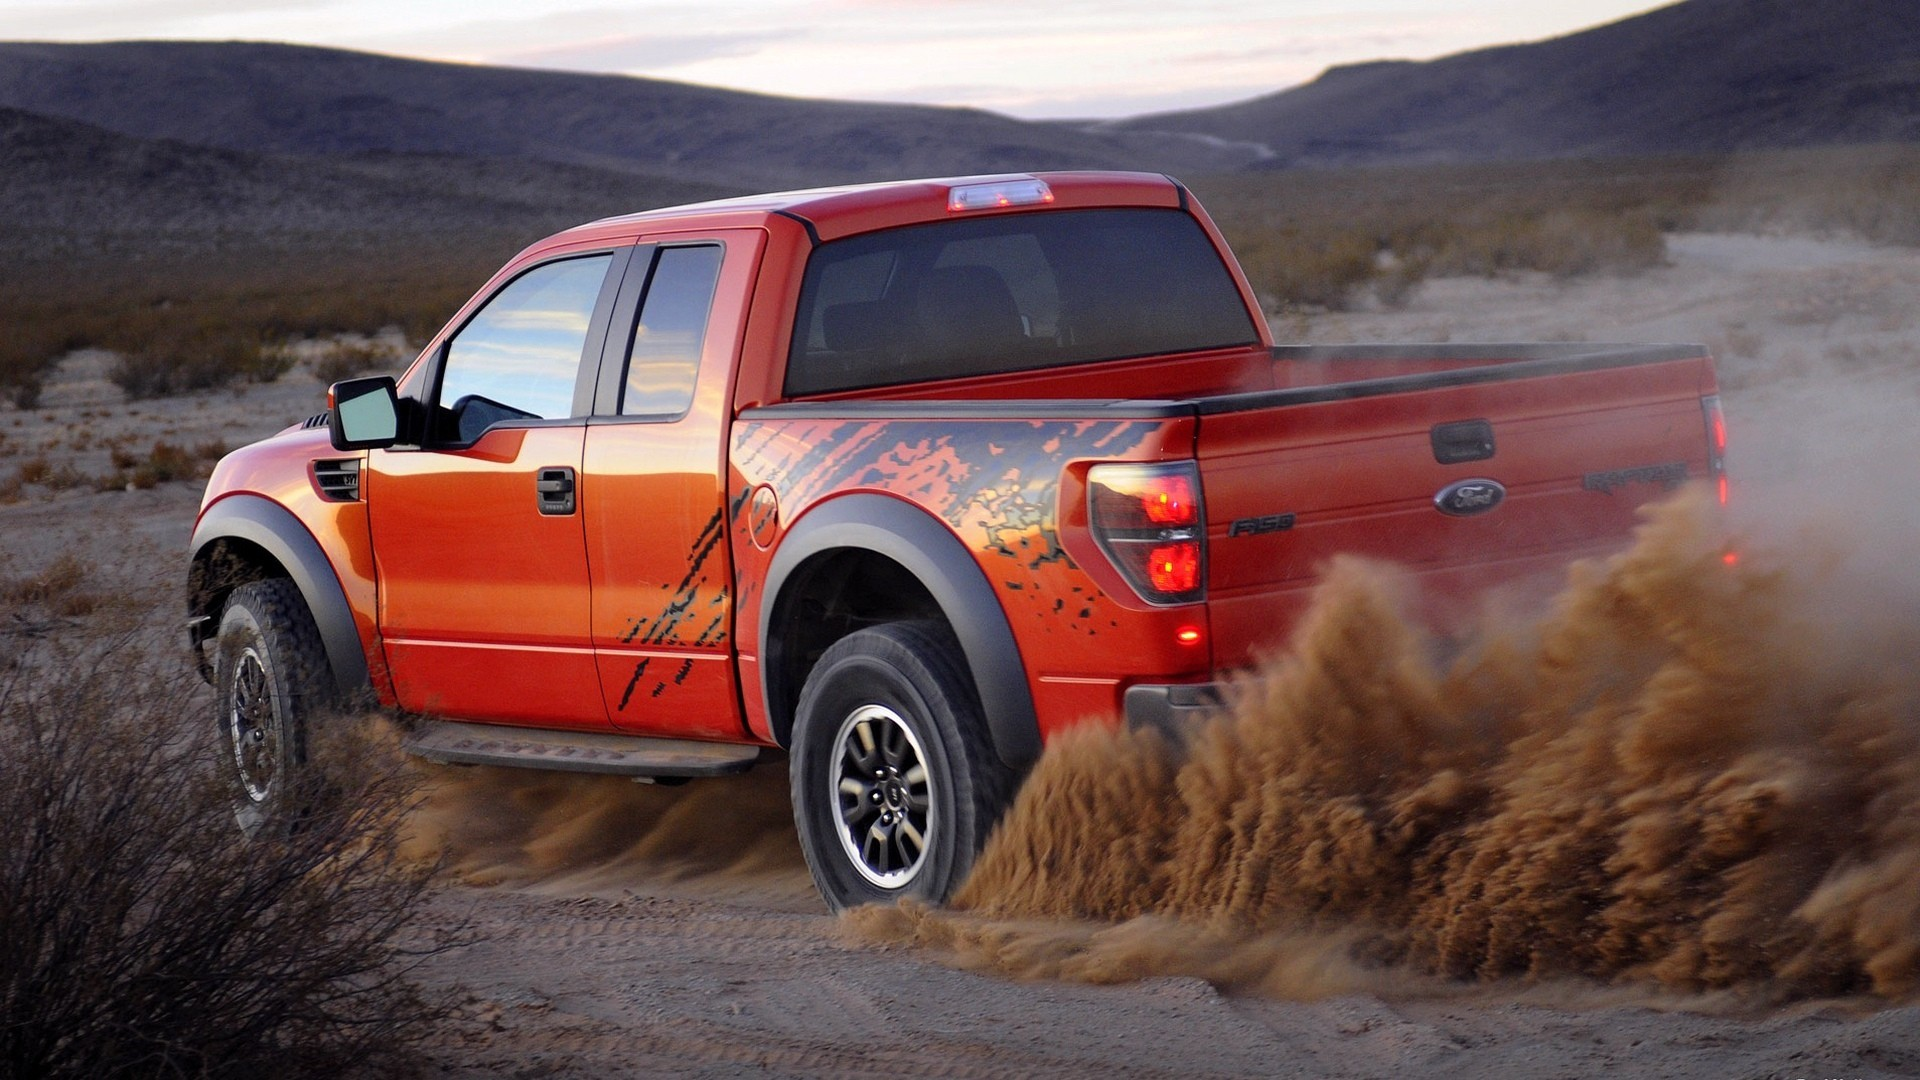 Ford Truck Wallpaper Images